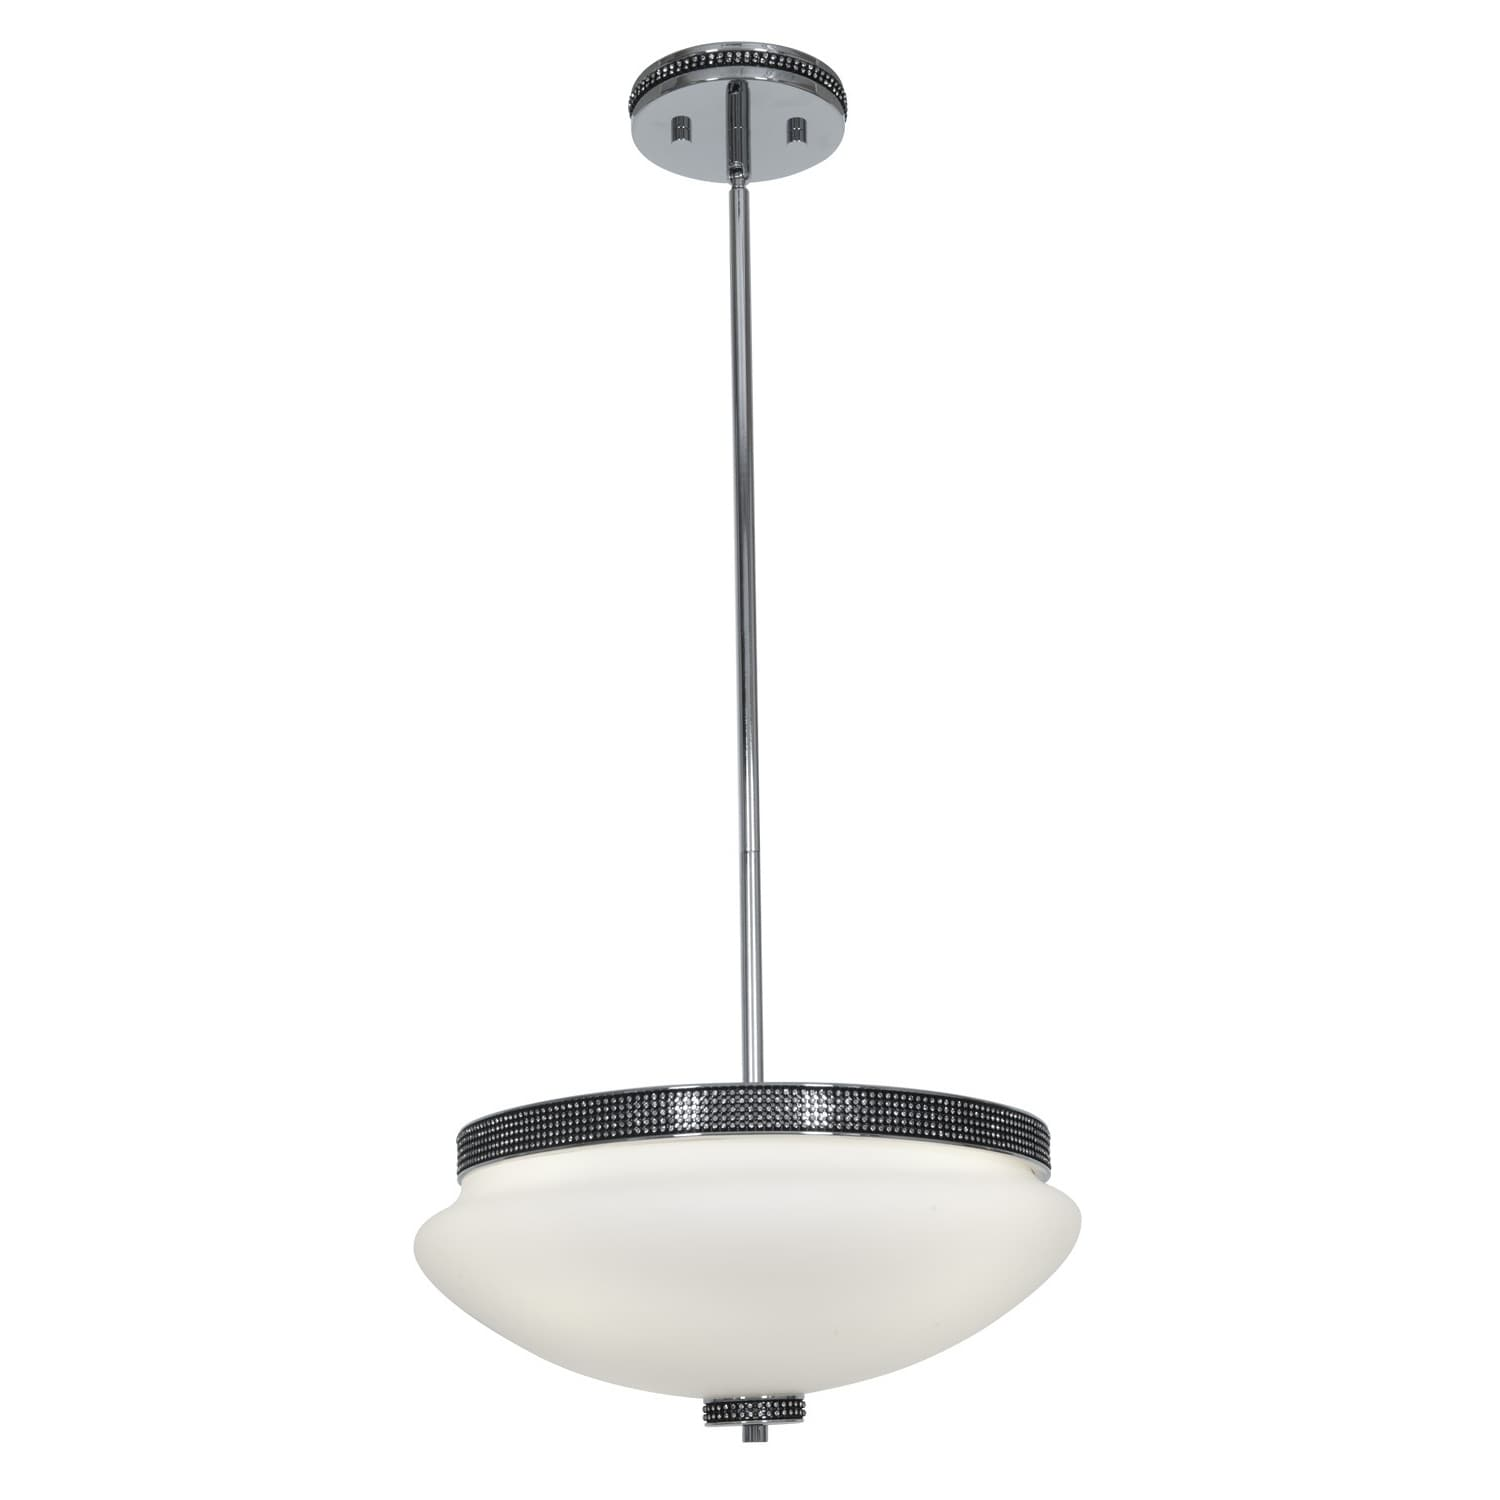 Access 'Onyx' 3-light Chrome Bowl Pendant